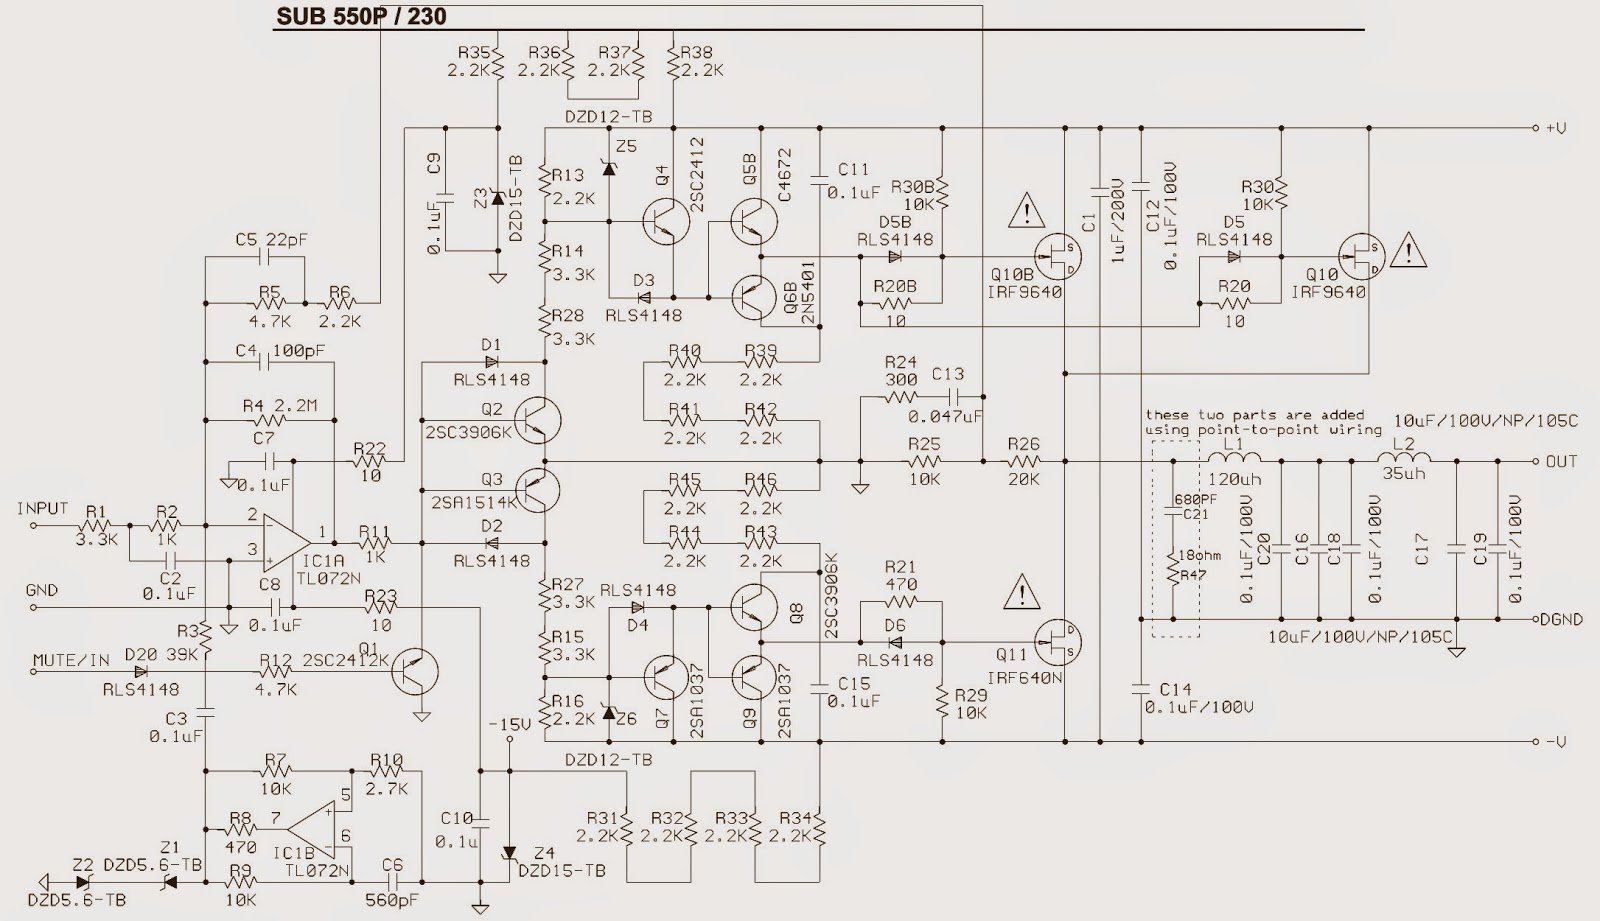 jbl crossover wiring diagram wiring diagramjbl crossover wiring diagram wiring diagram ebookjbl crossover schematics best place to find wiring and datasheetjbl